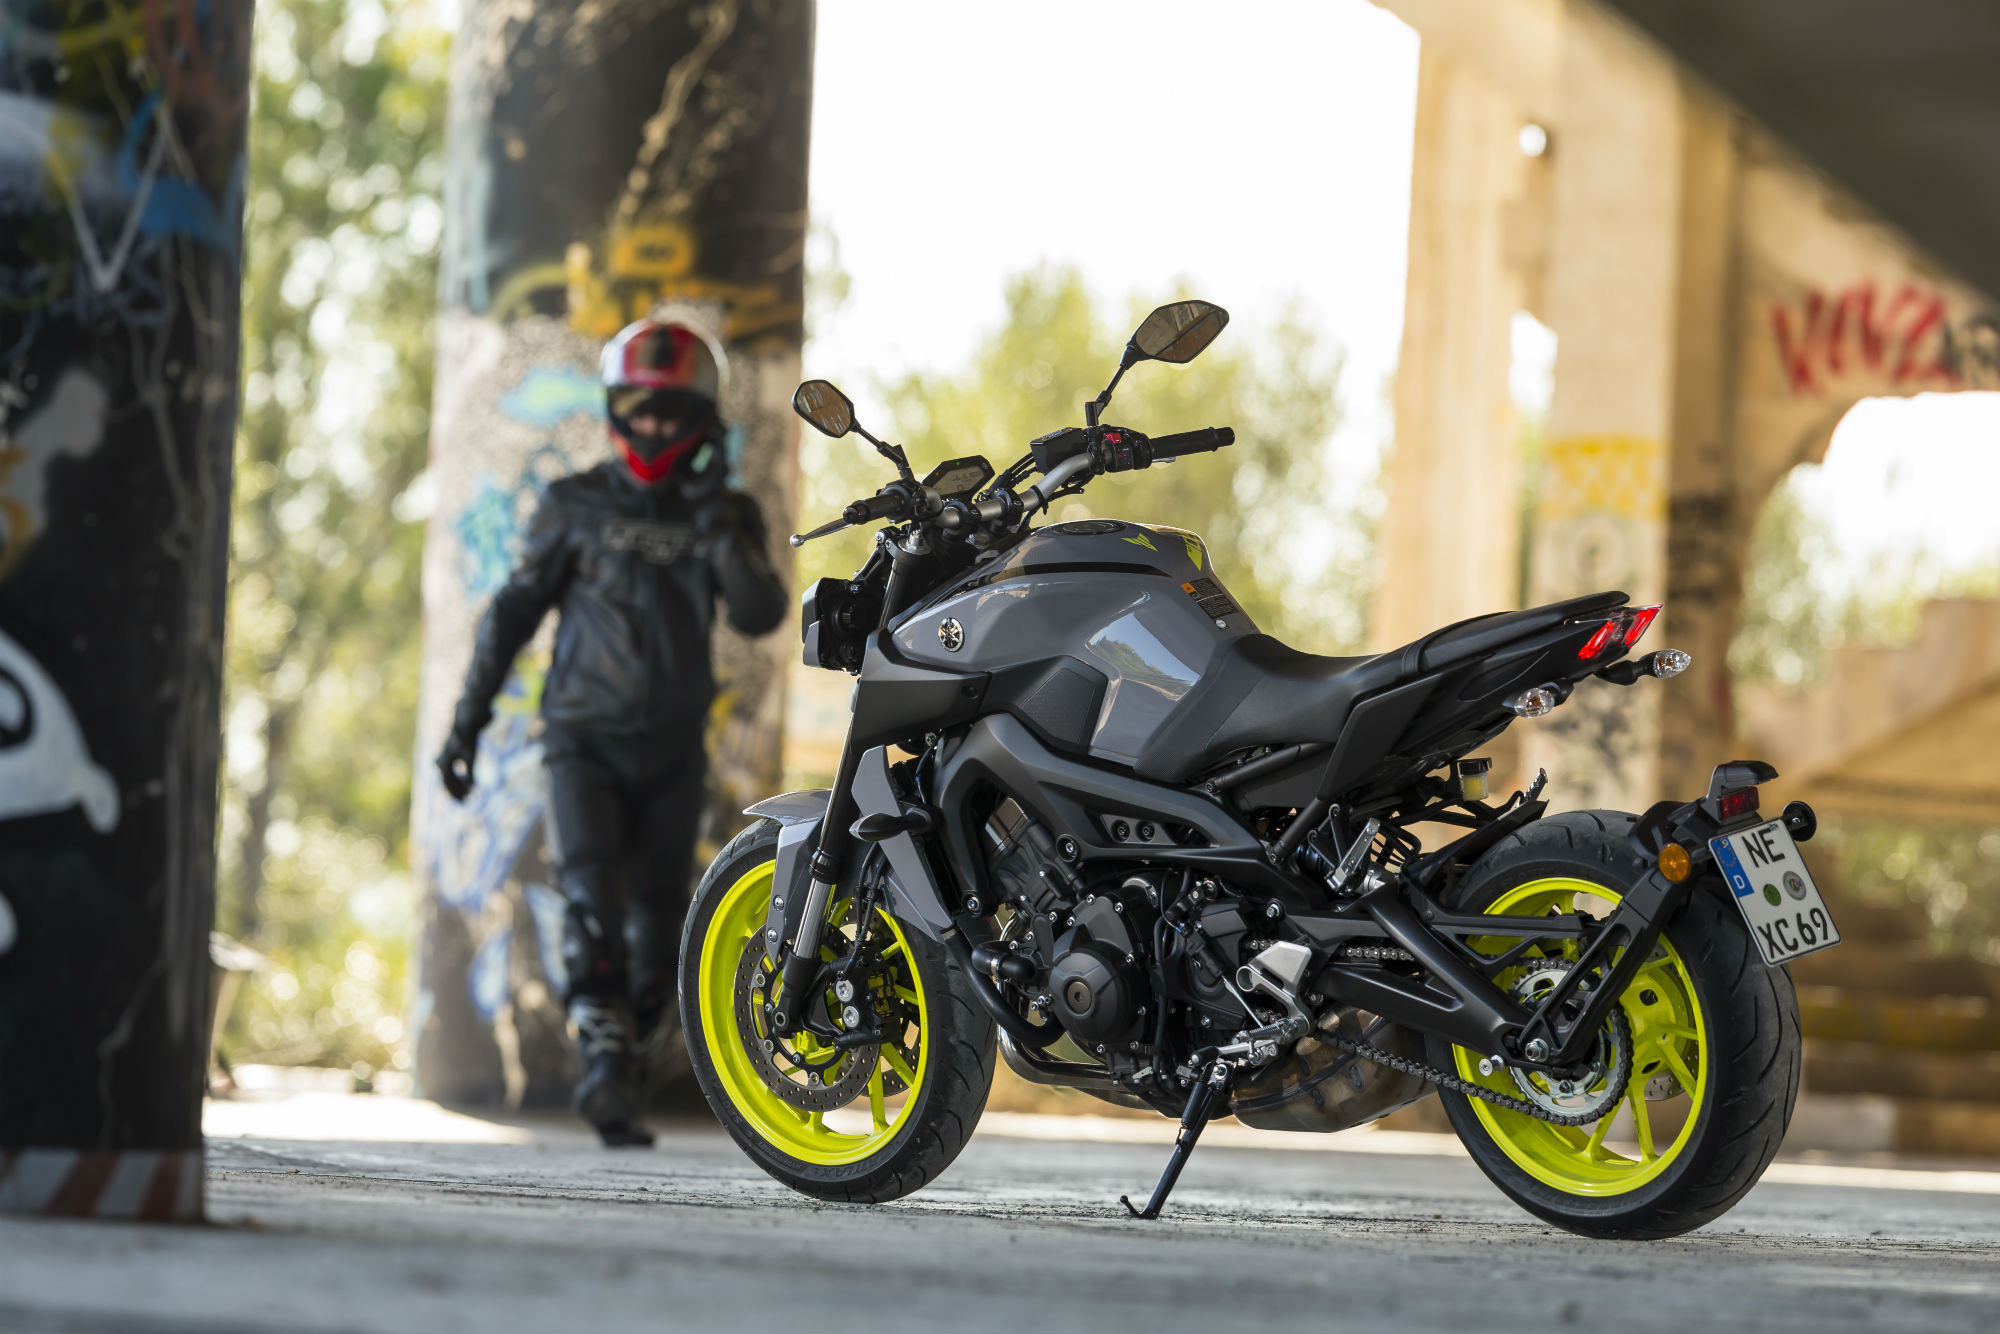 Model tested yamaha mt 09